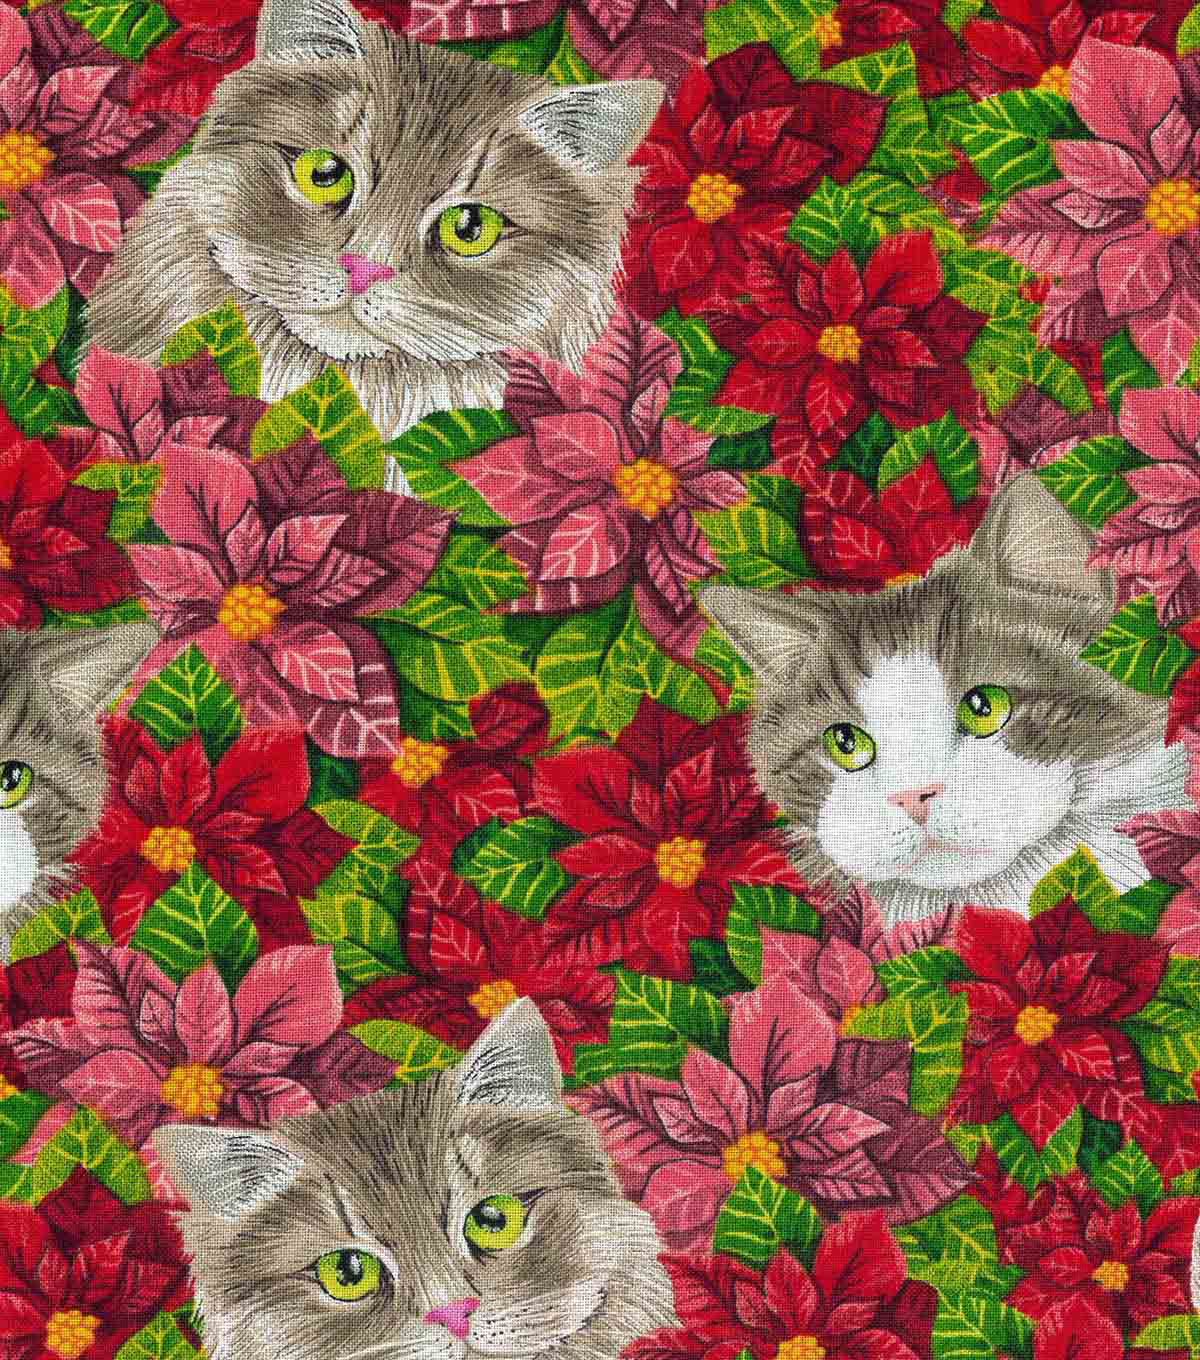 Christmas Cotton Fabric-Cats in Poinsettias